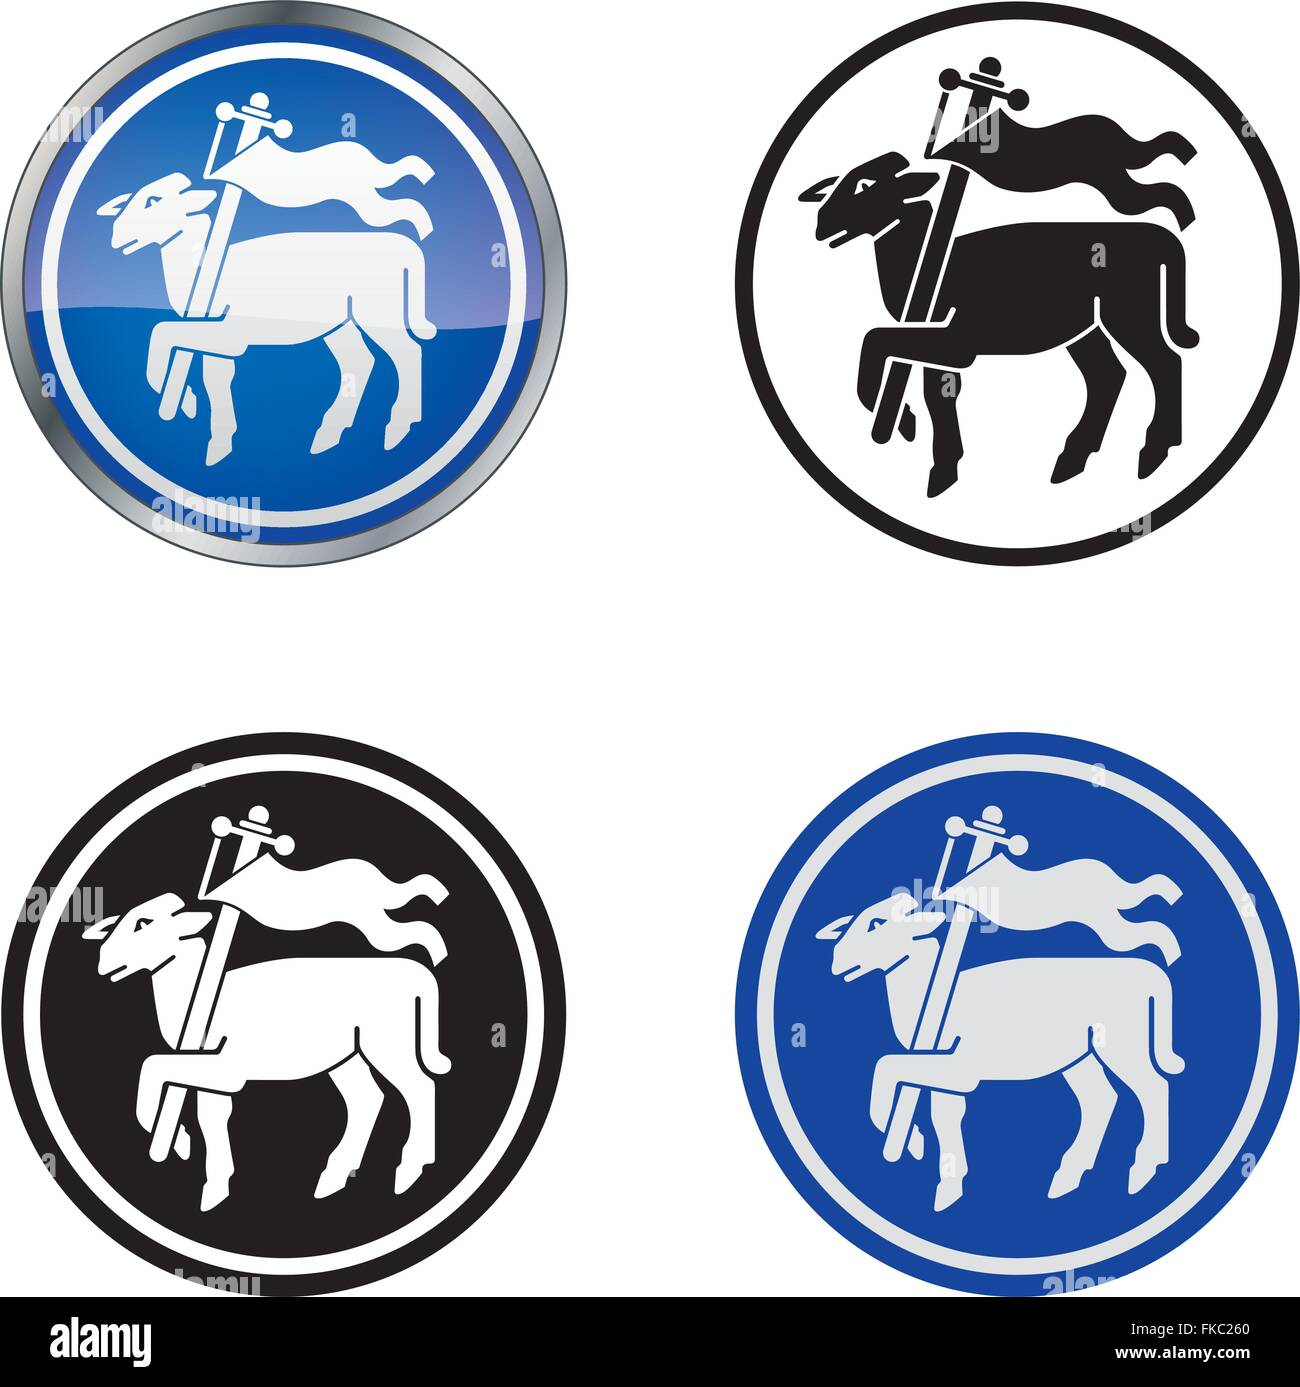 Traditional Butcher's Guild Vector Symbol, four variations - Stock Image